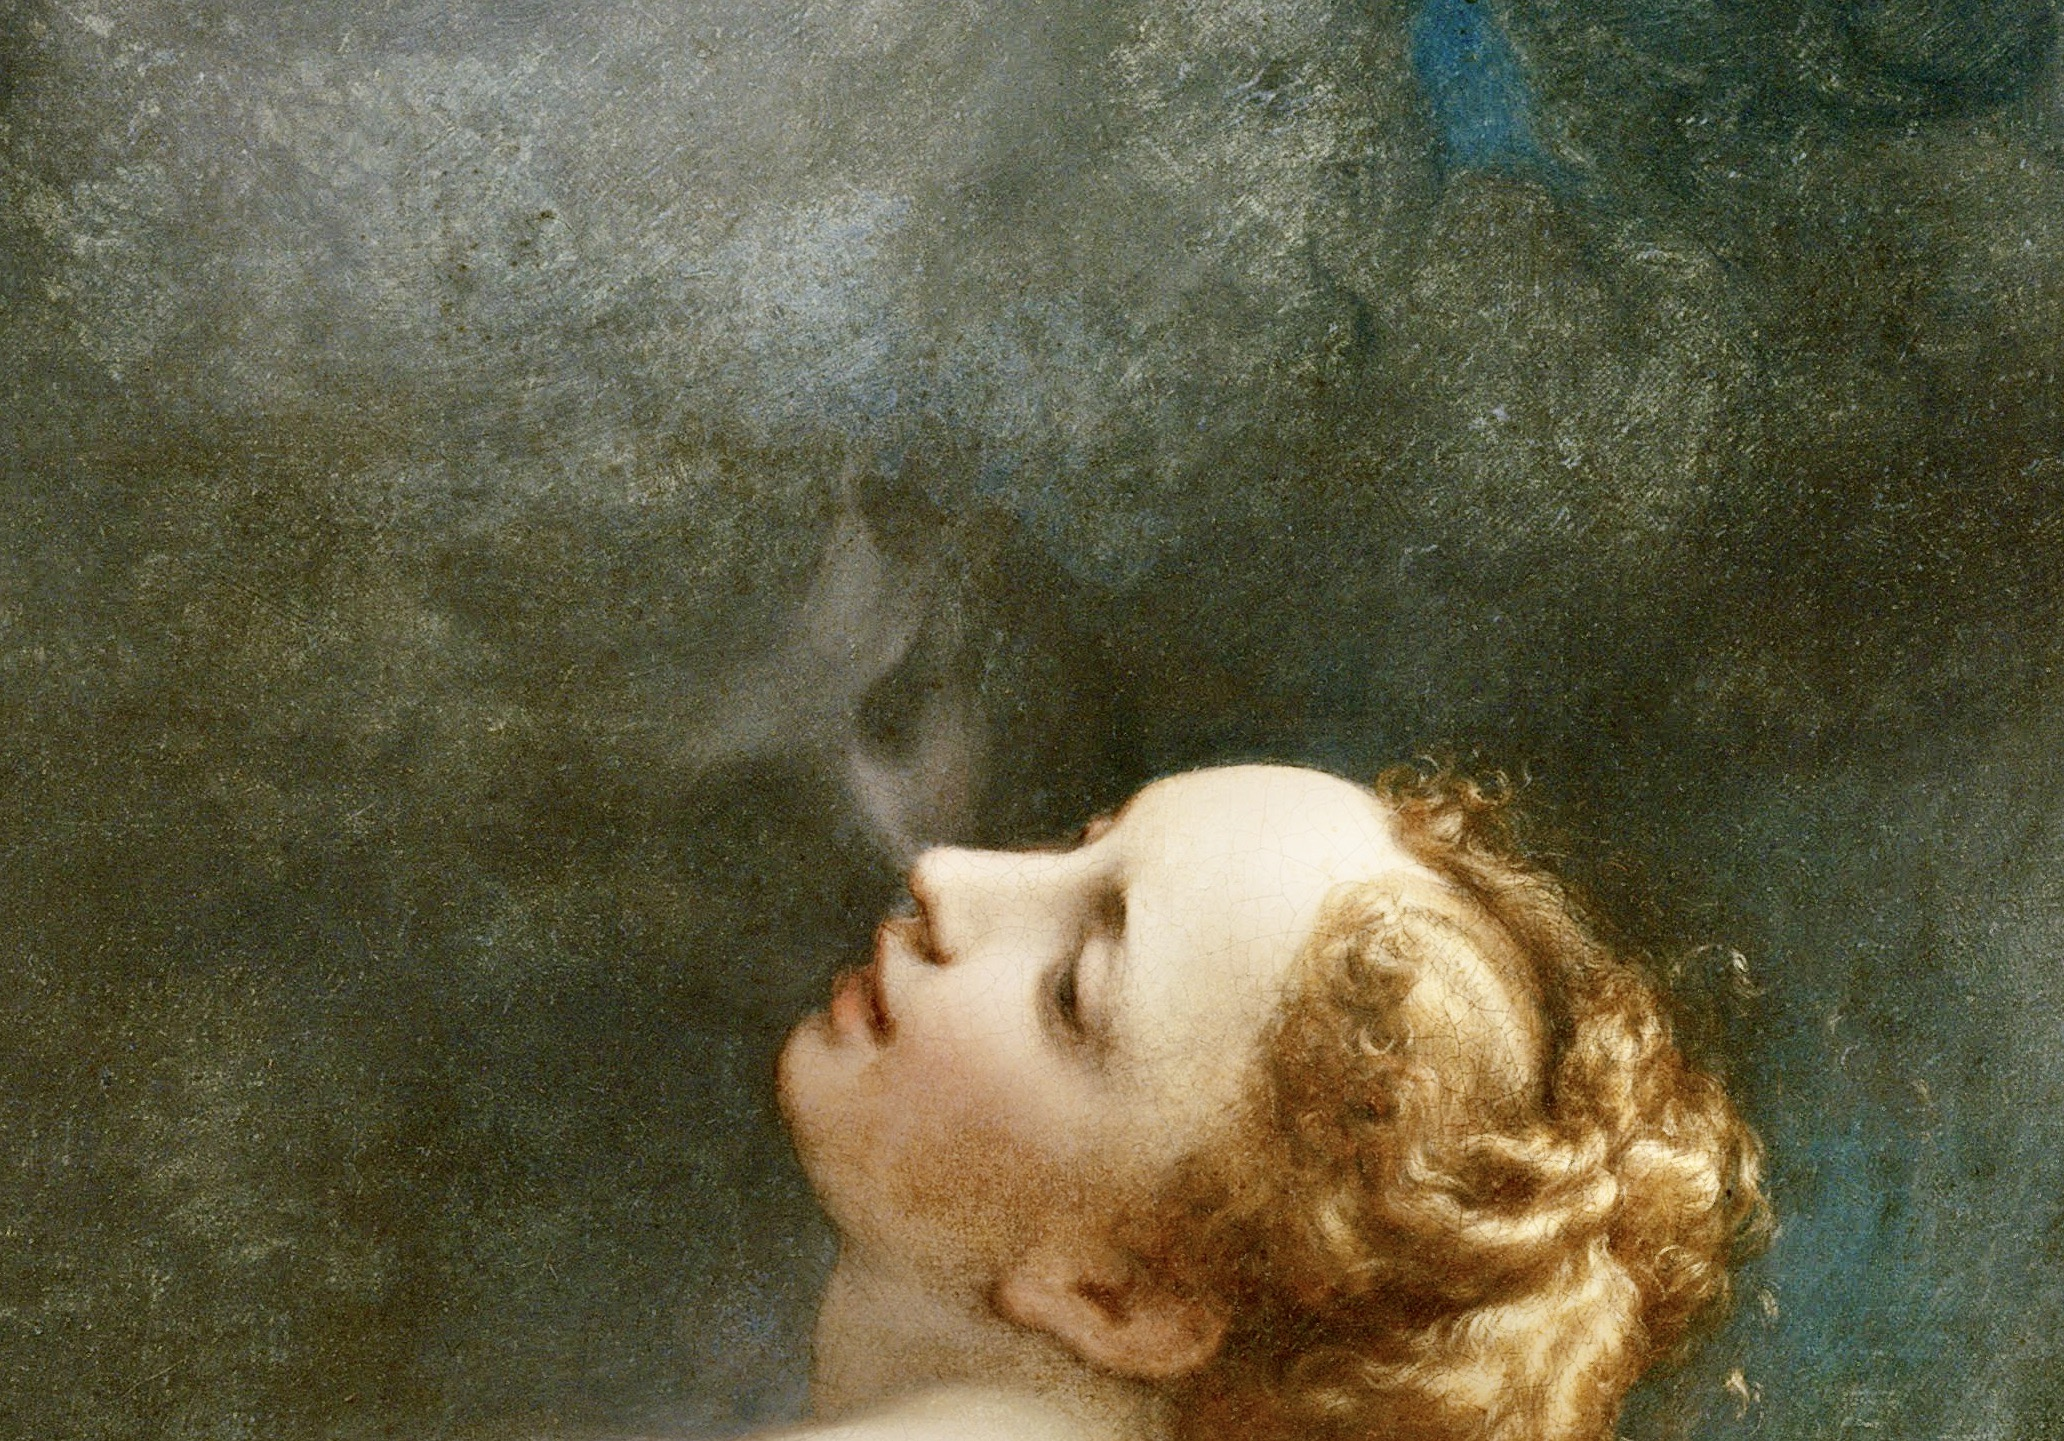 Antonio_Allegri,_called_Correggio_-_Jupiter_and_Io_-_Google_Art_Project 3